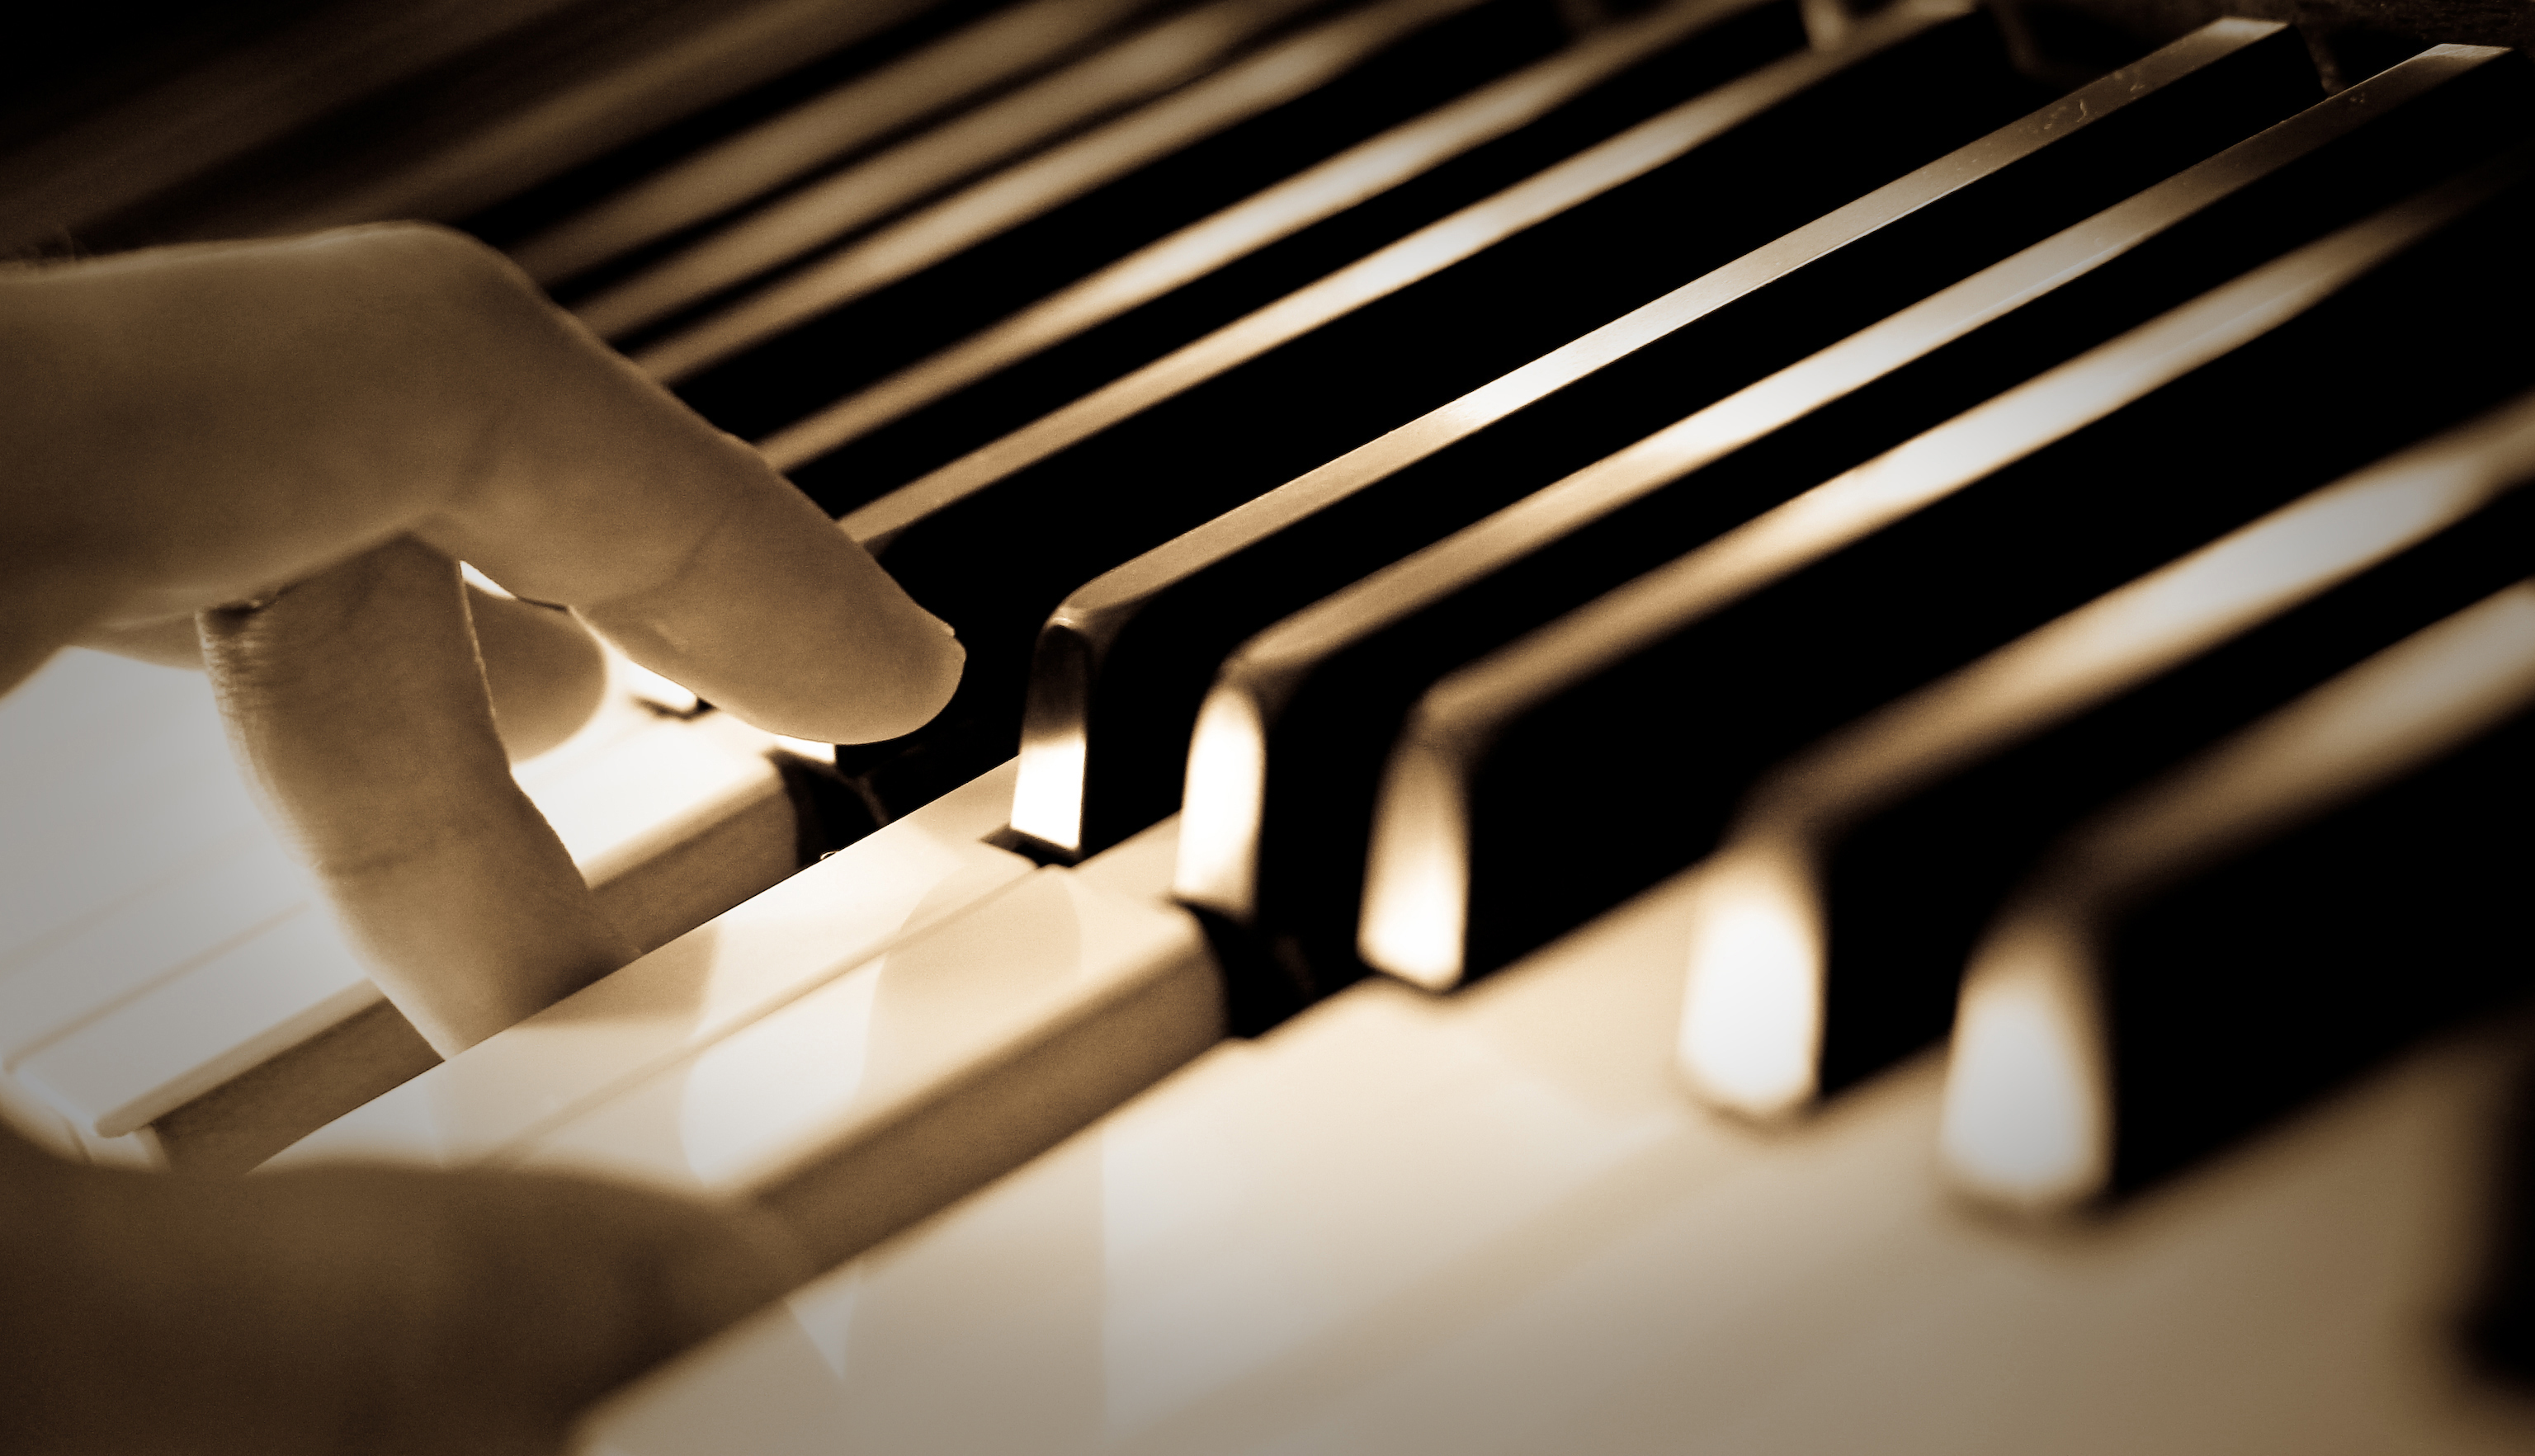 Teaching services offered for piano